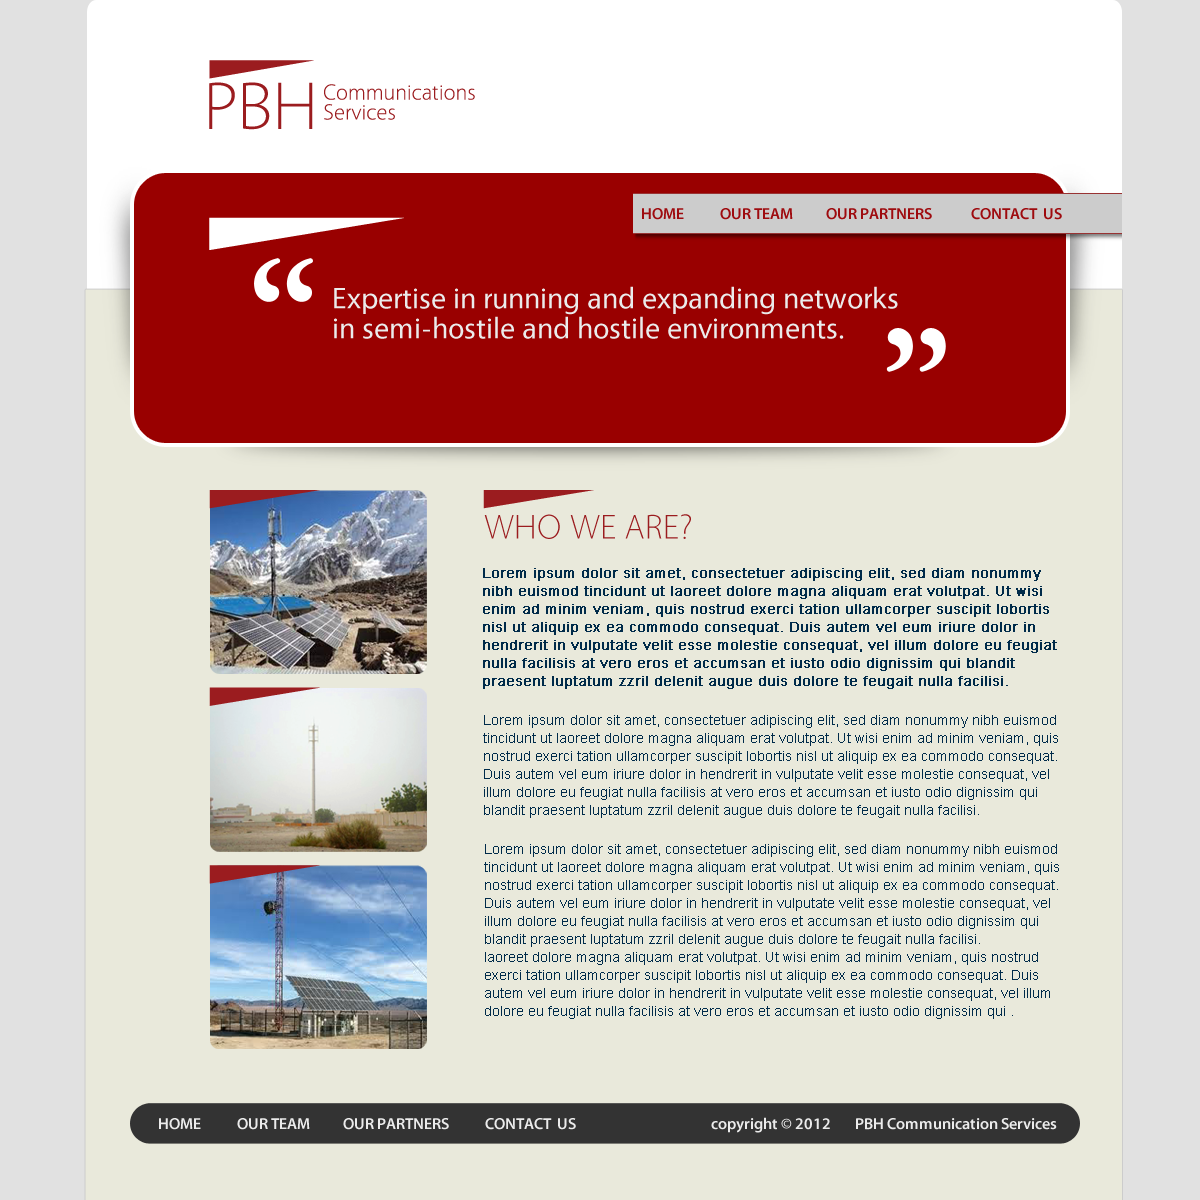 Web Page Design by storm - Entry No. 8 in the Web Page Design Contest New Web Page Design for PBH Communications Services.